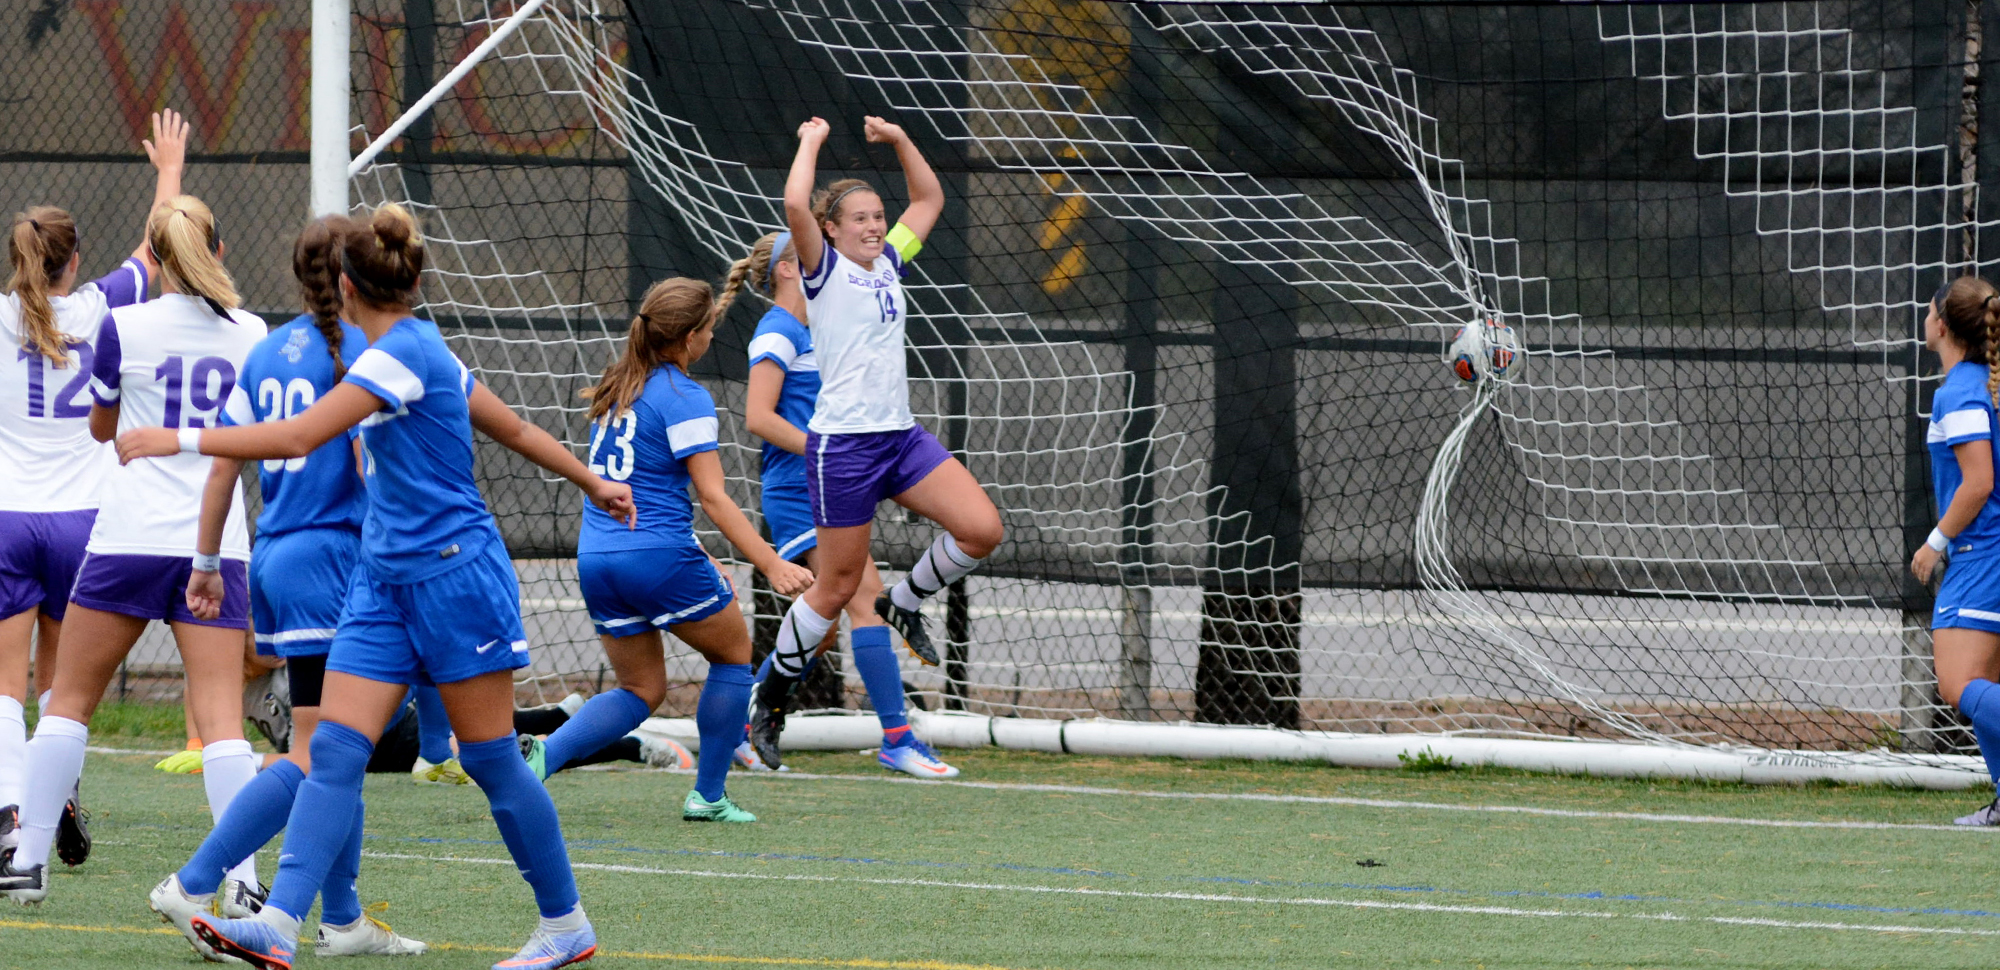 Senior midfielder Carolyn Warner celebrates her goal in the 19th minute on Saturday.